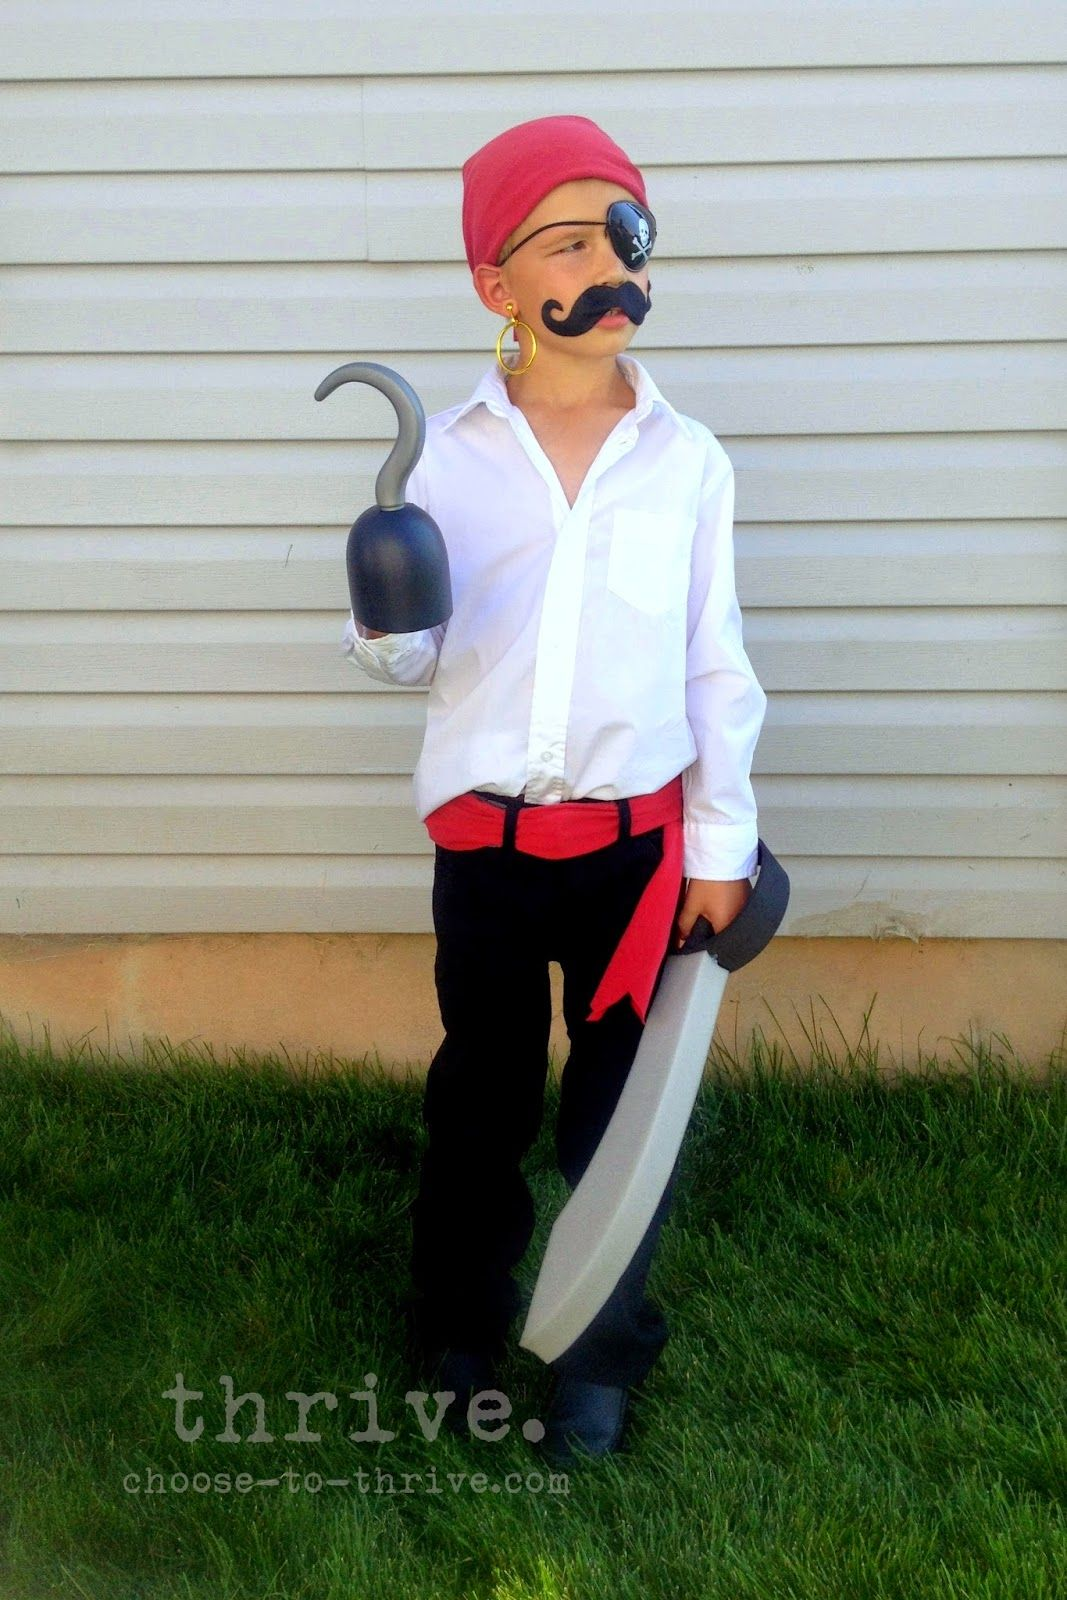 How to make a pirate costume for kids last minute diy a modern how to make a pirate costume for kids last minute diy a modern thread pinterest diy pirate costume costumes and easy solutioingenieria Image collections